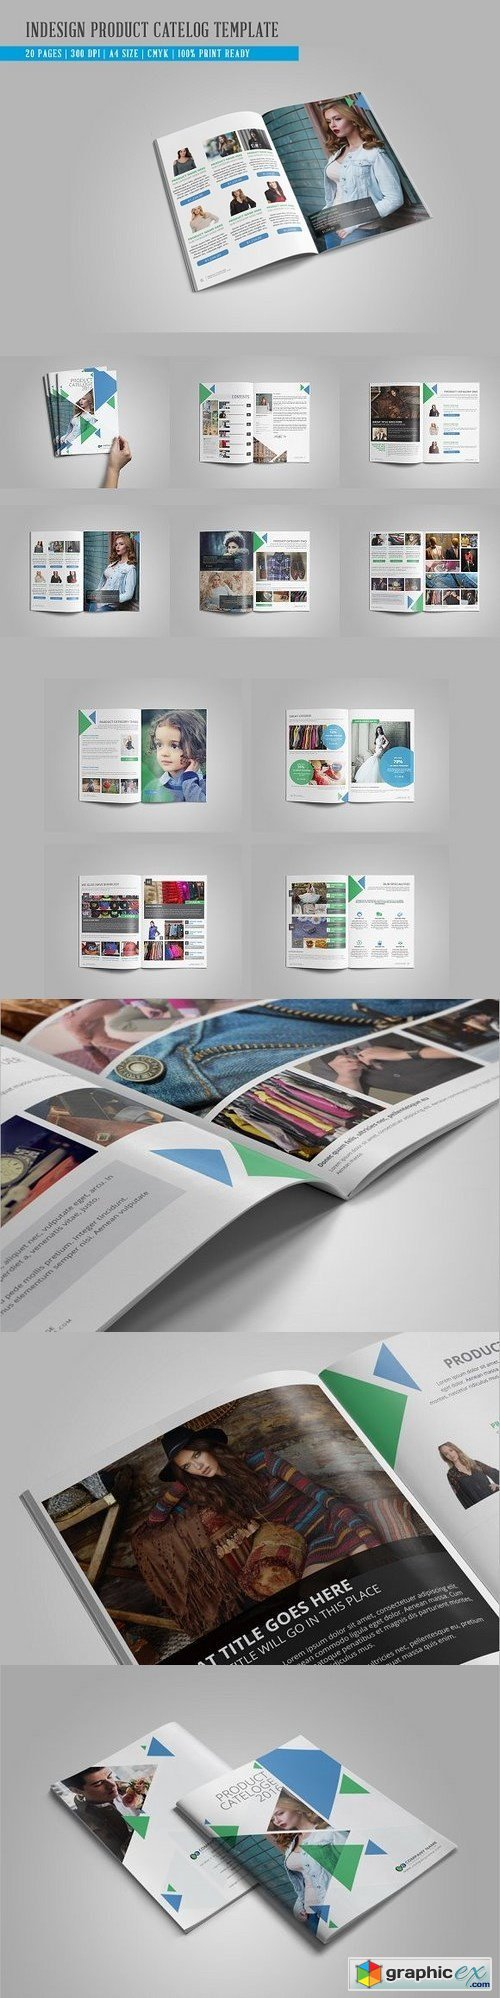 Indesign Product Catelog Template